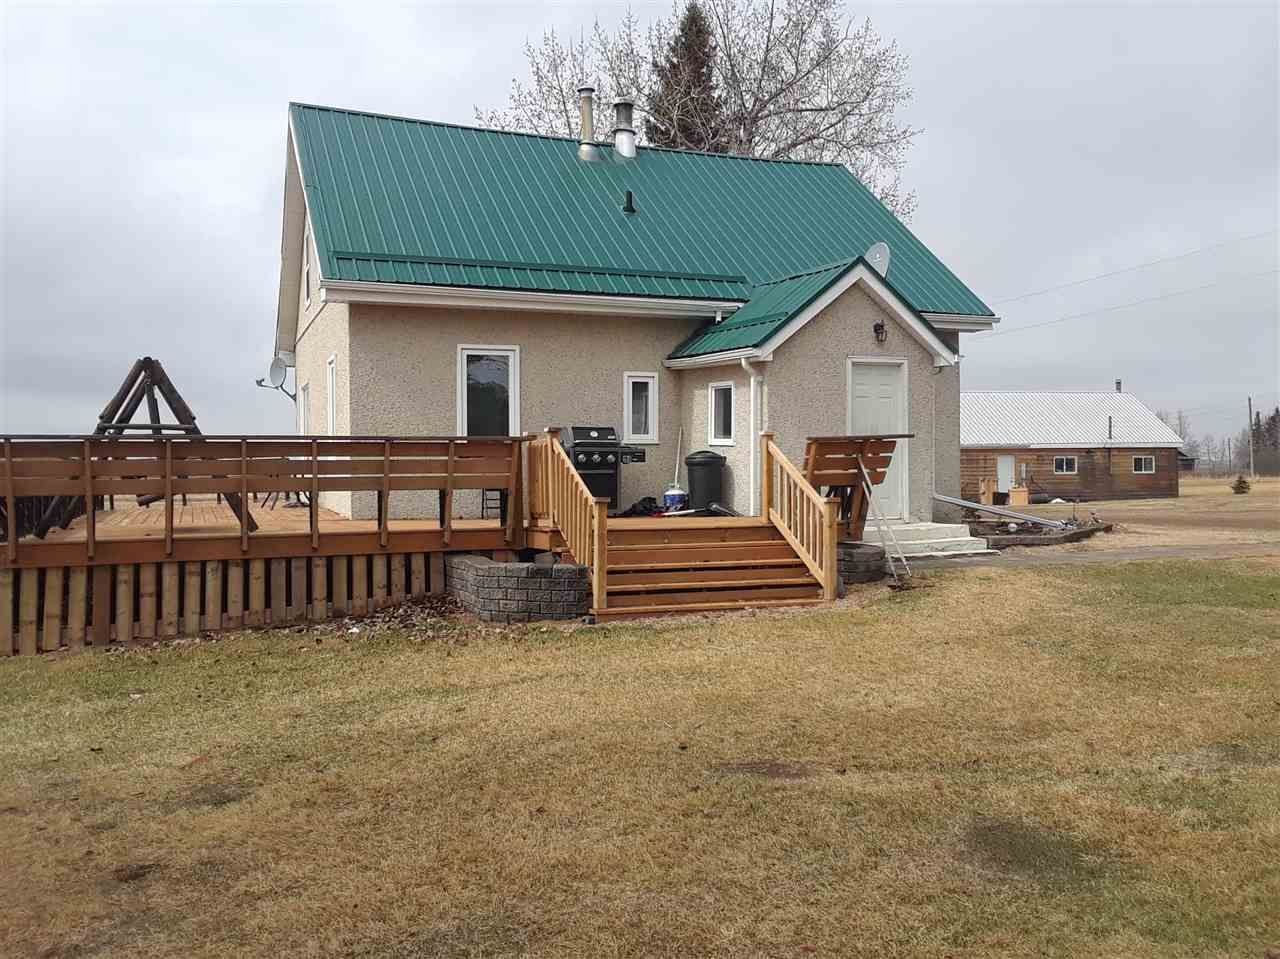 Main Photo: 60119 Rg Rd 260: Rural Westlock County House for sale : MLS®# E4241417